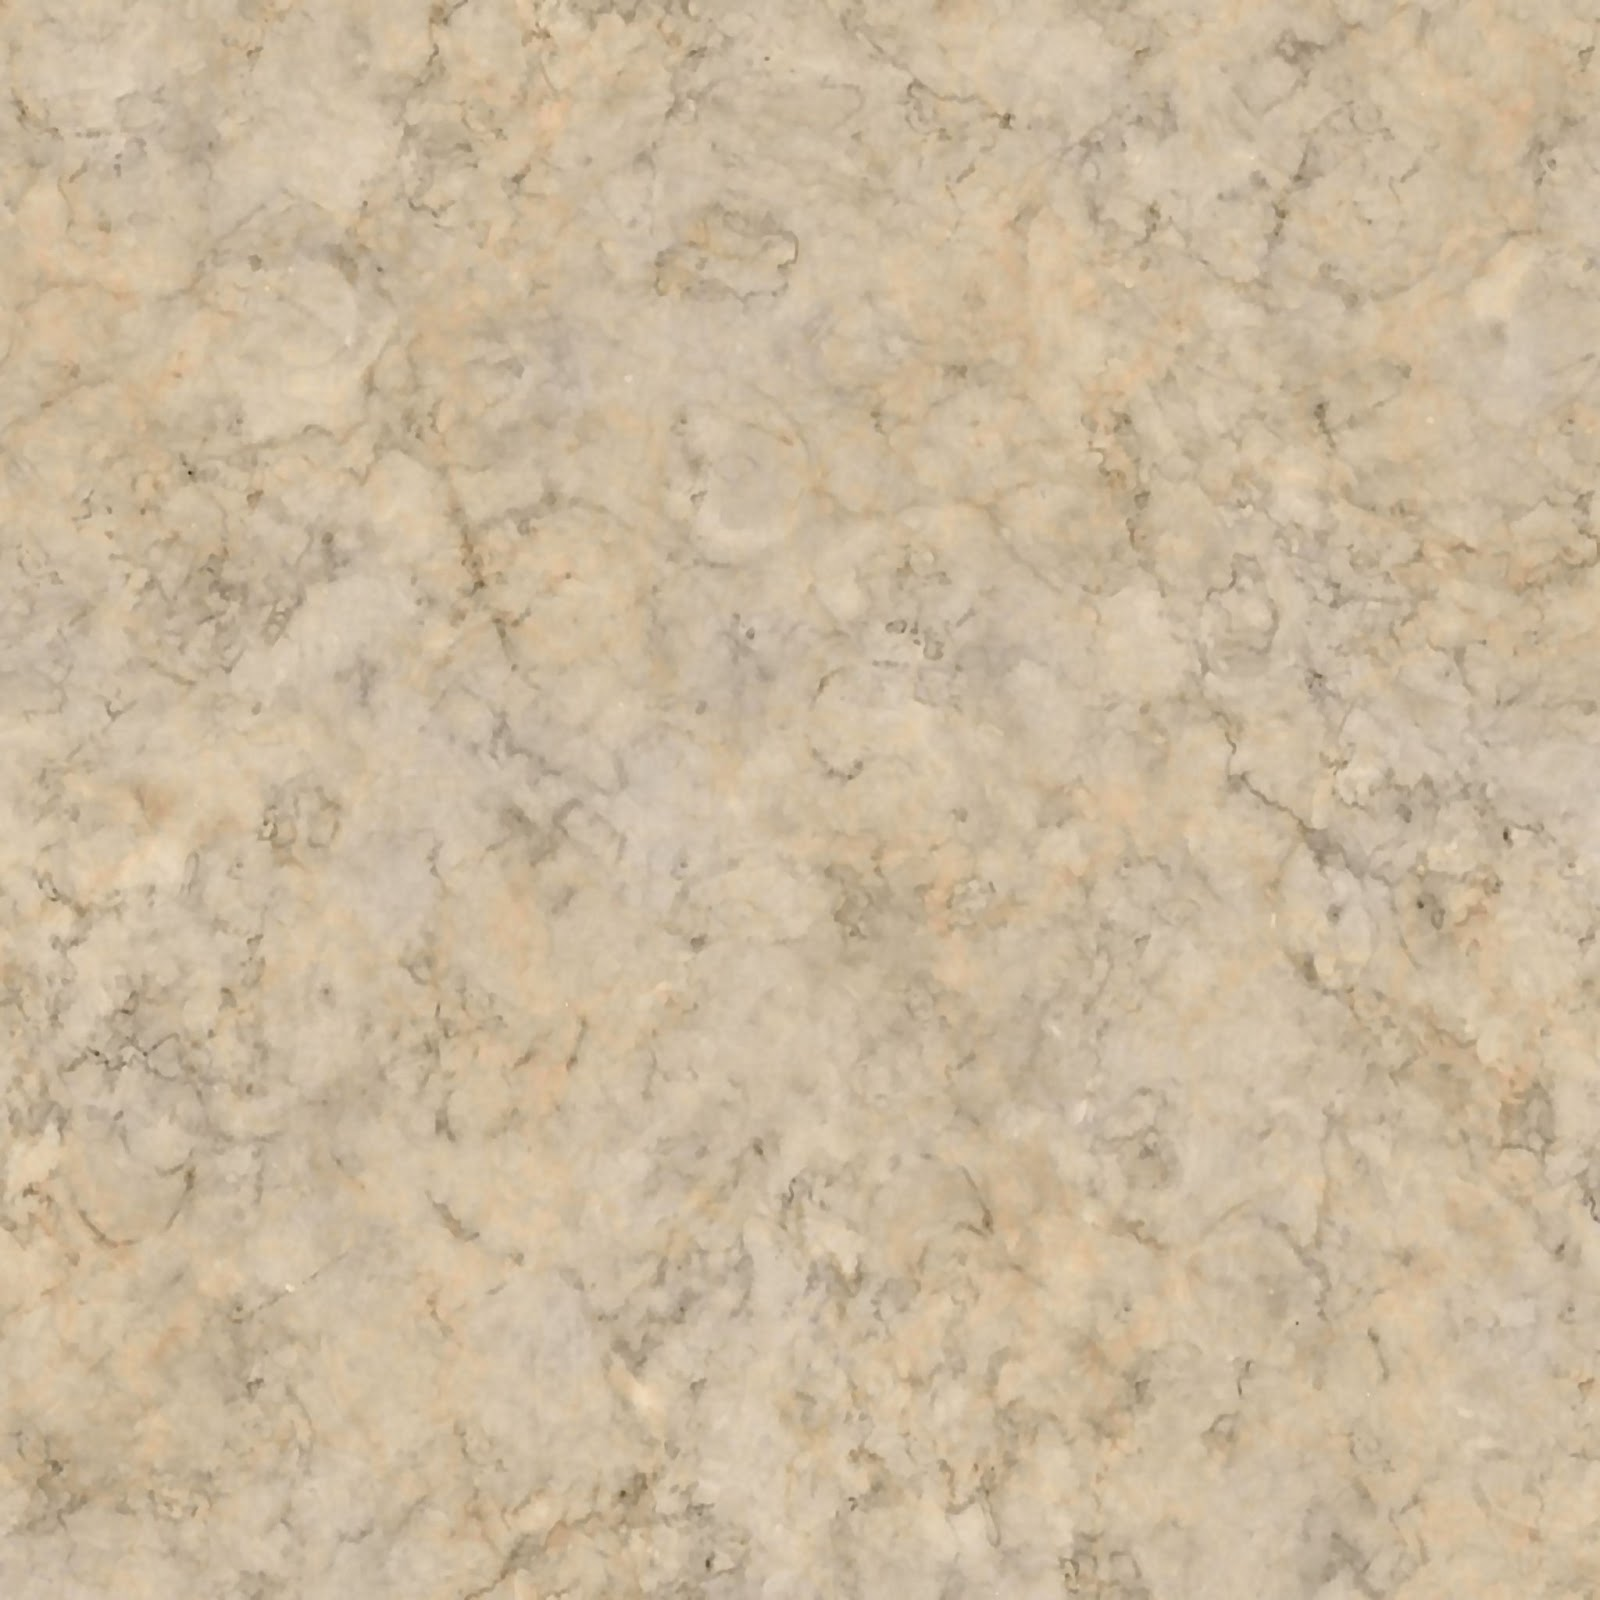 Texturise Free Seamless Textures With Maps Seamless Travertine